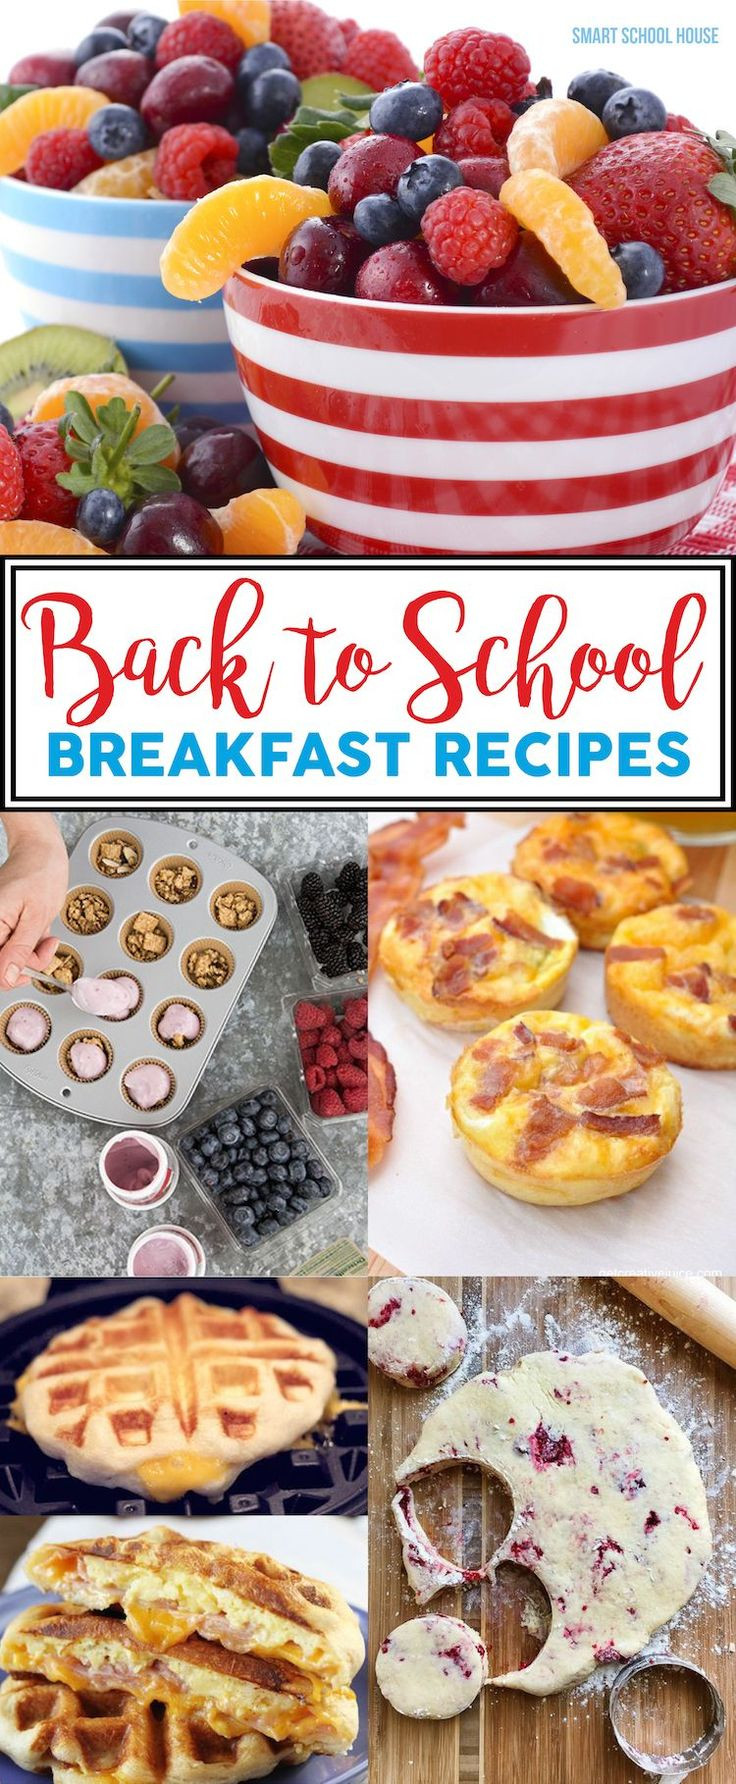 Healthy Breakfast For School  1000 images about School Lunch Ideas on Pinterest